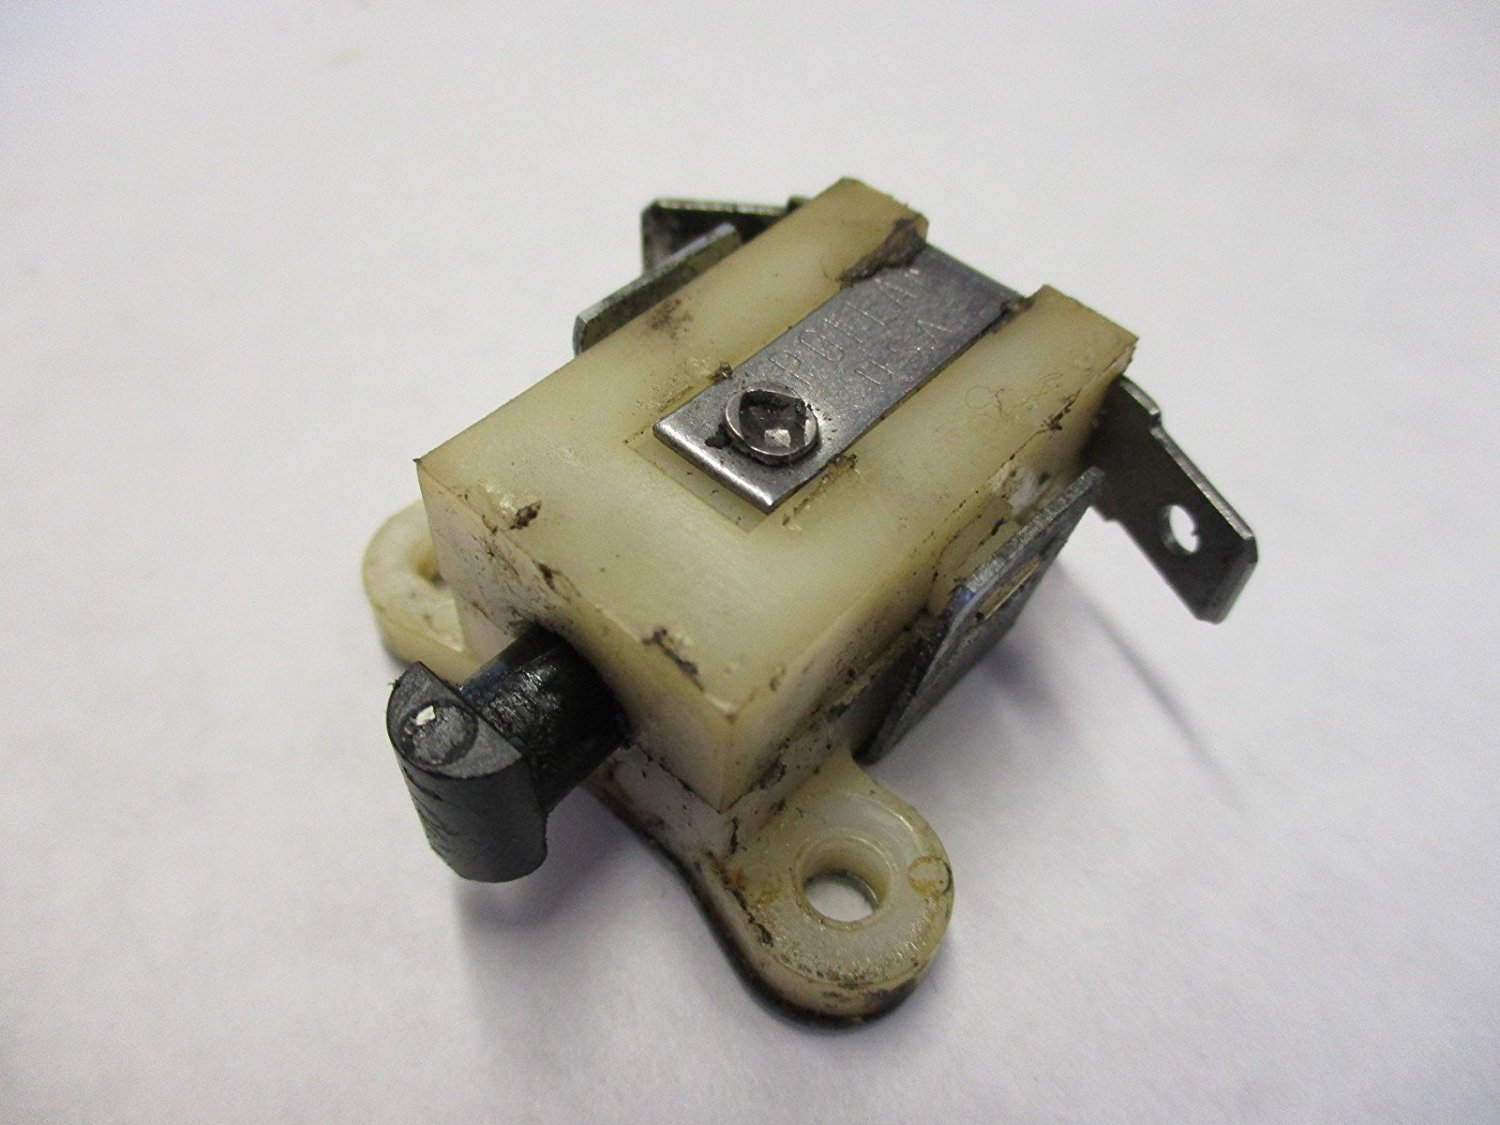 0386056 Evinrude Johnson Outboard Neutral Safety Switch & Brackt 20-65 Hp 1973-2005 386056